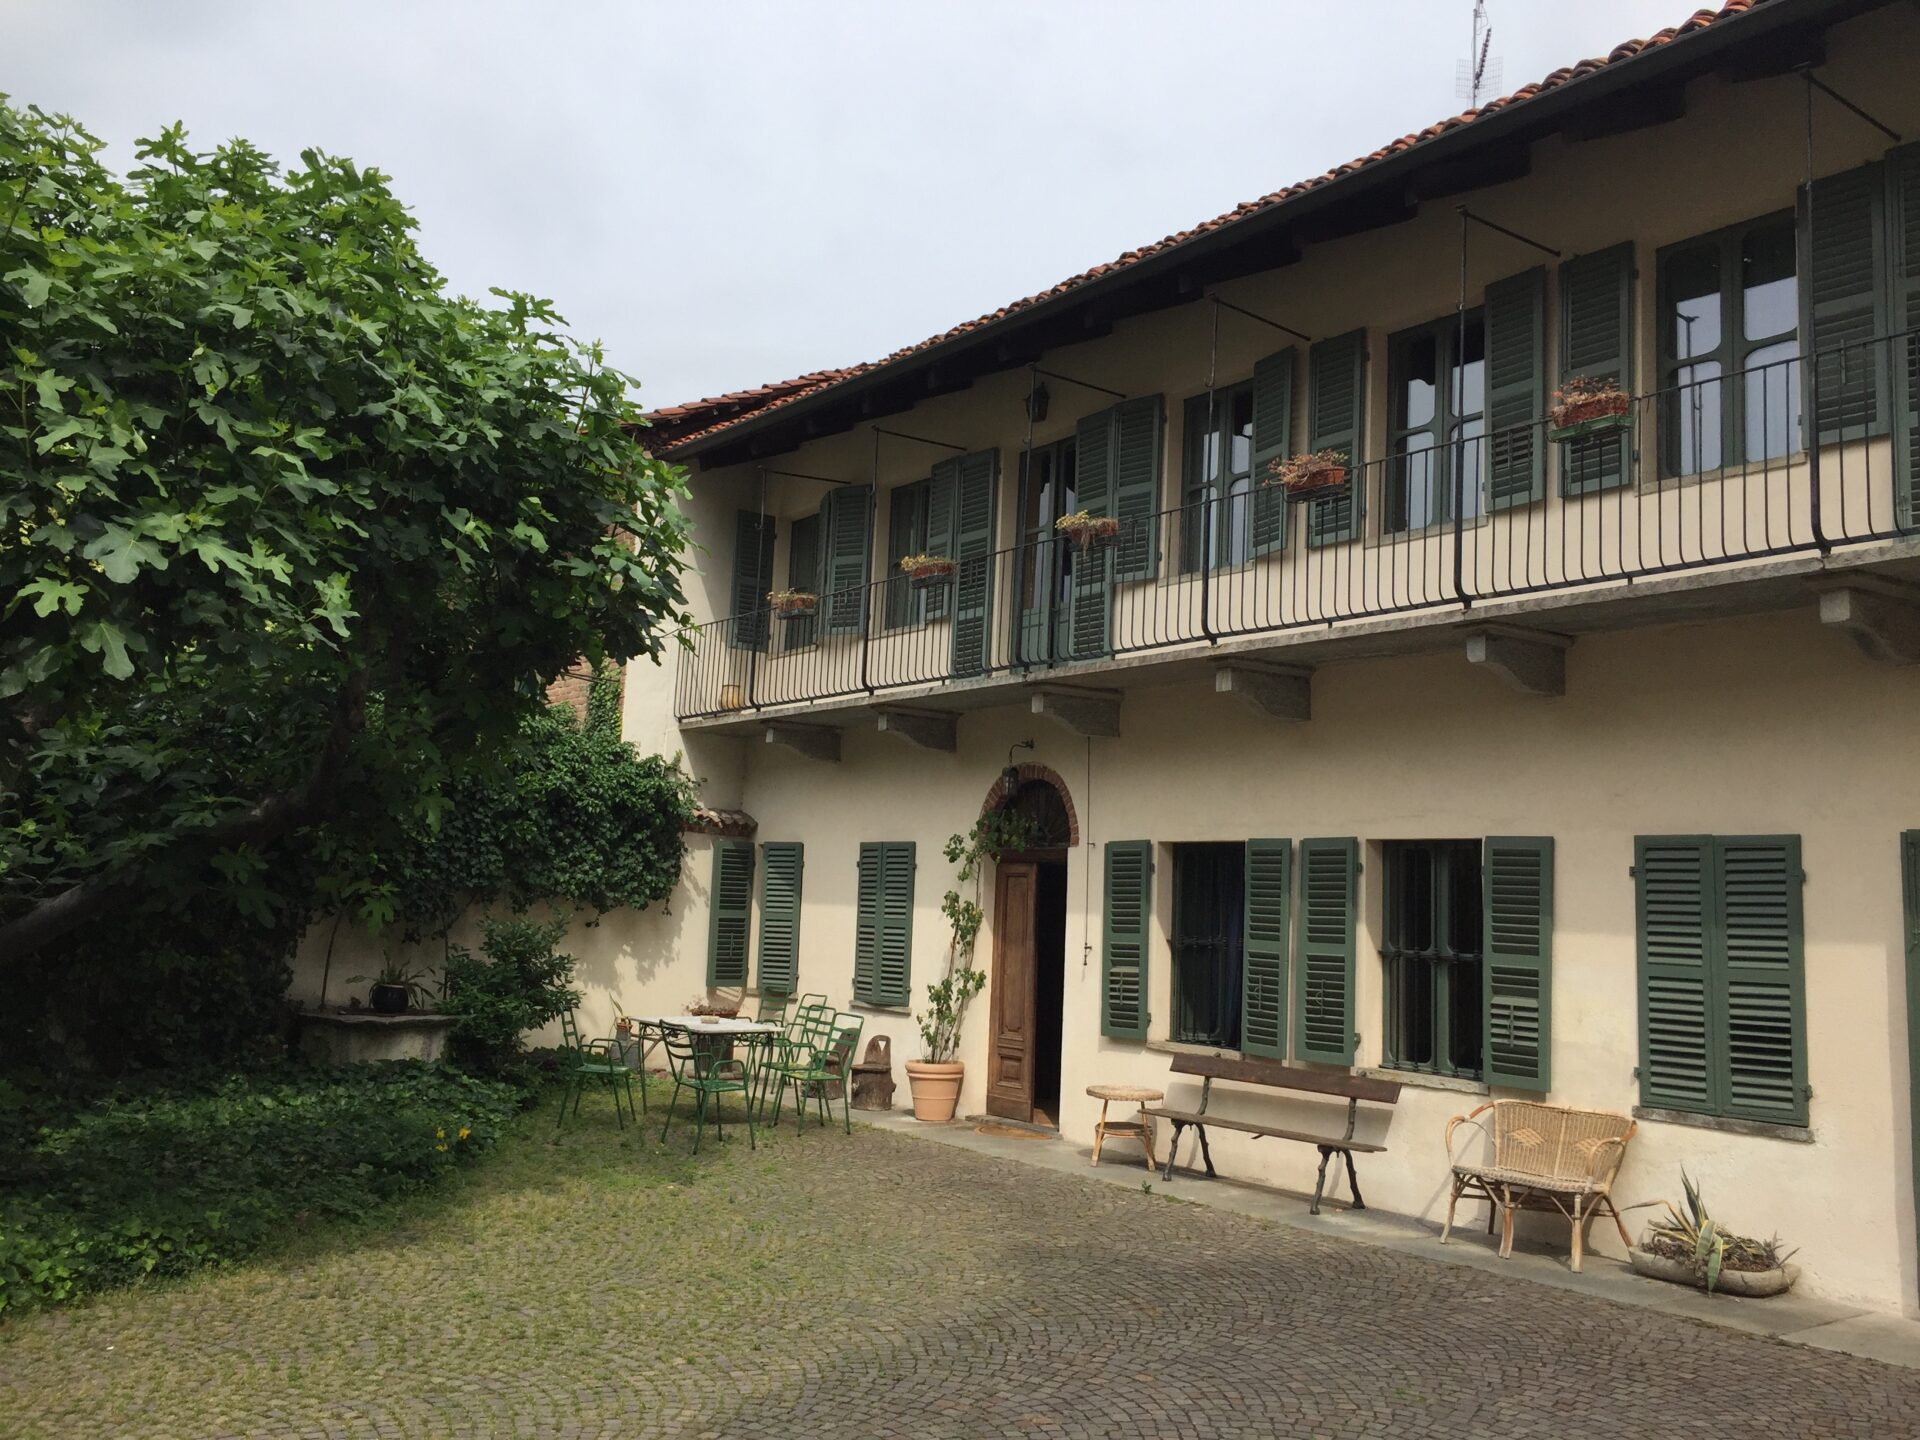 Courtyard of Giovanni's charming guesthouse